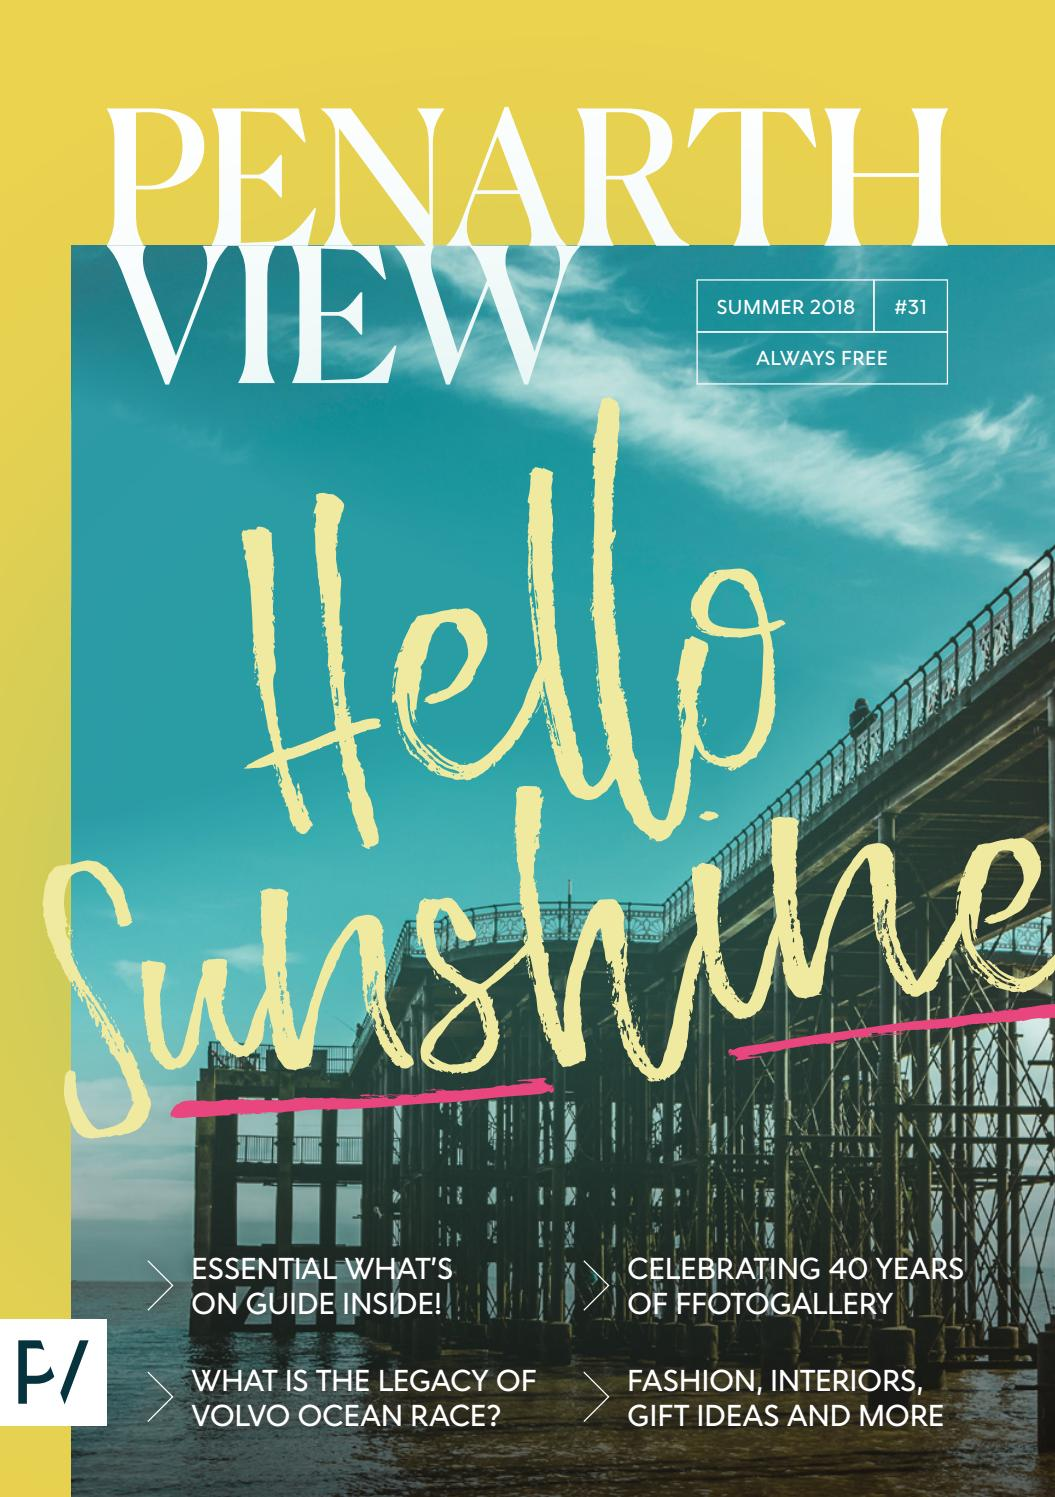 Penarth View Issue 31 (Summer 2018) by Penarth View - issuu